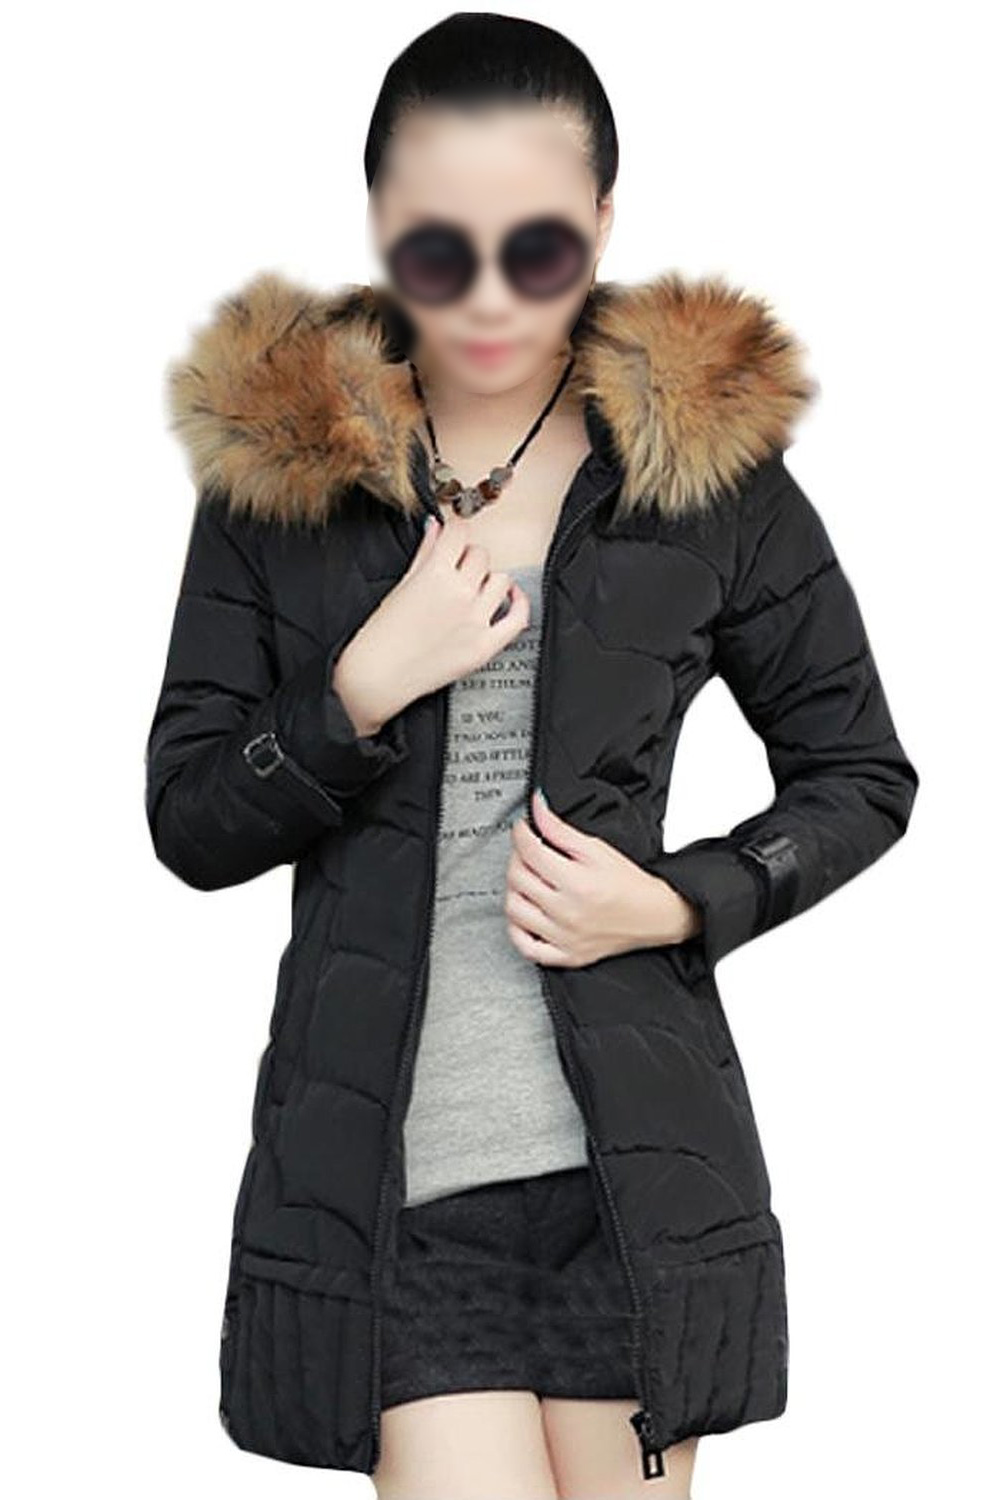 FS Hot Womens Down Jacket Long Coat Hooded Winter Fur Collar Warm OuterwearОдежда и ак�е��уары<br><br><br>Aliexpress